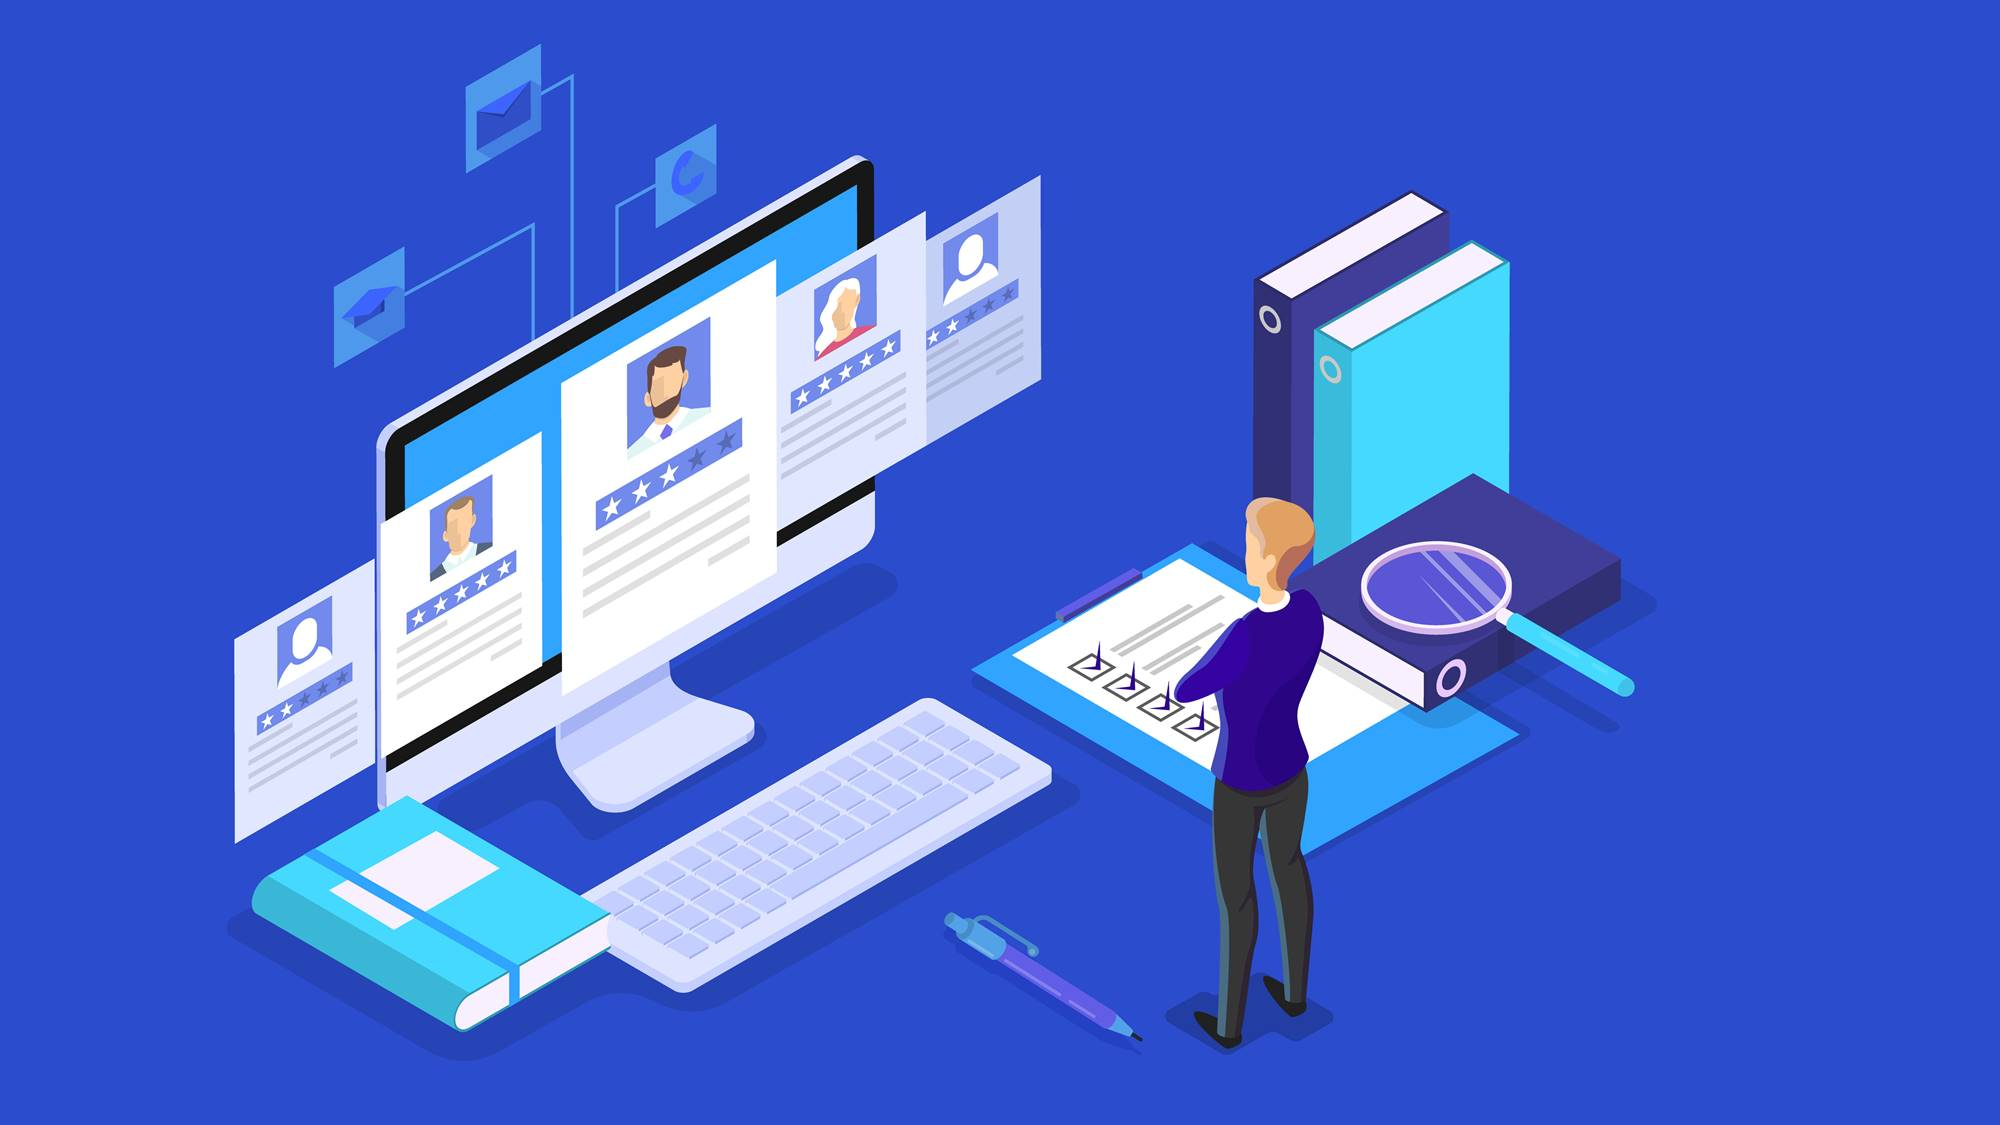 Man looking at CV profile and make examination. HR manager making resume examination on computer. Looking for job candidate to hire. Idea of recruitment. Vector isometric illustration